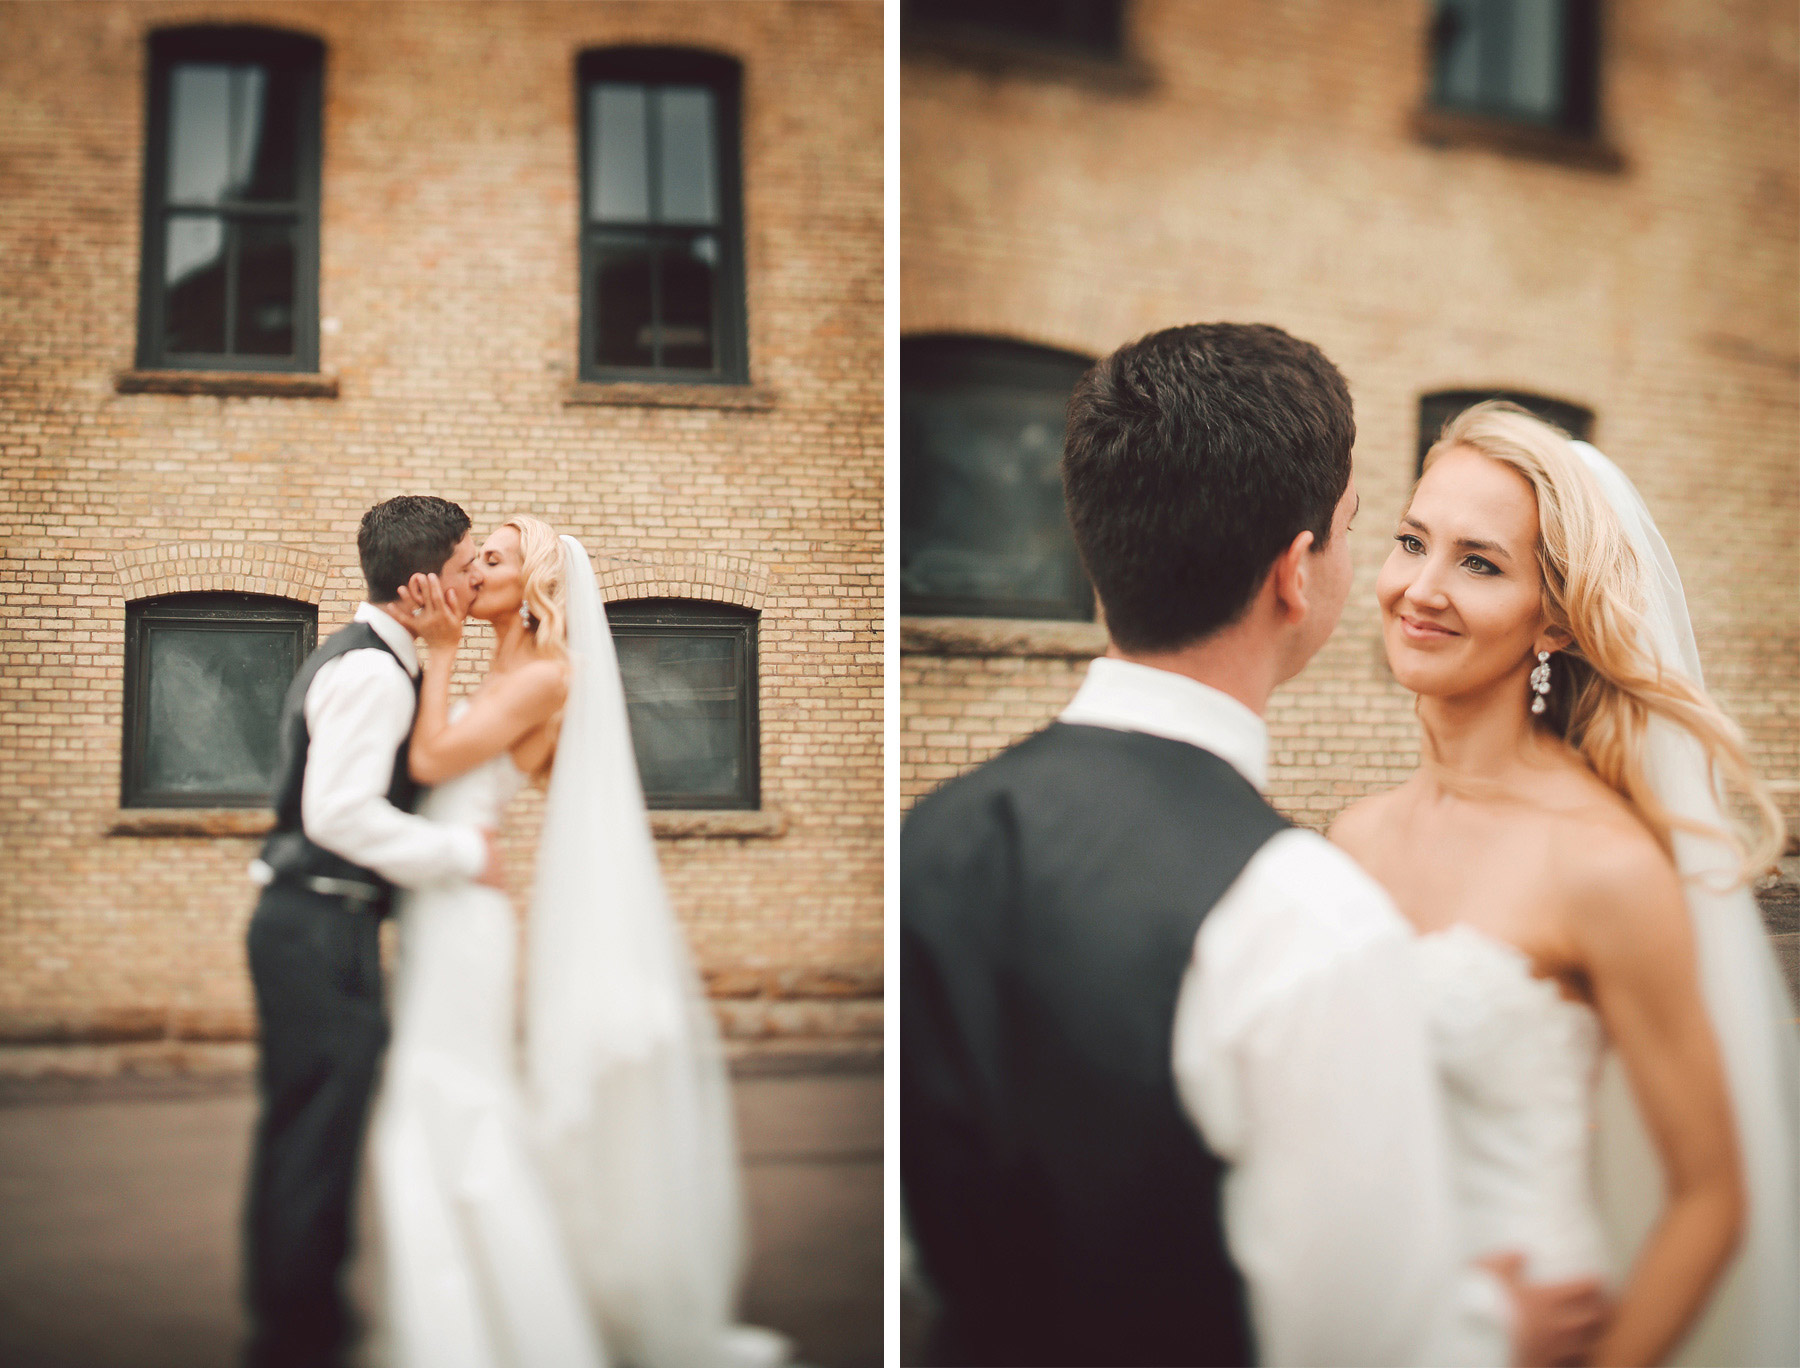 17-Saint-Paul-Minnesota-Wedding-Photographer-by-Andrew-Vick-Photography-Summer-Abulae-Bride-Groom-Dress-Veil-Kiss-Embrace-Vintage-Laura-and-Tim.jpg